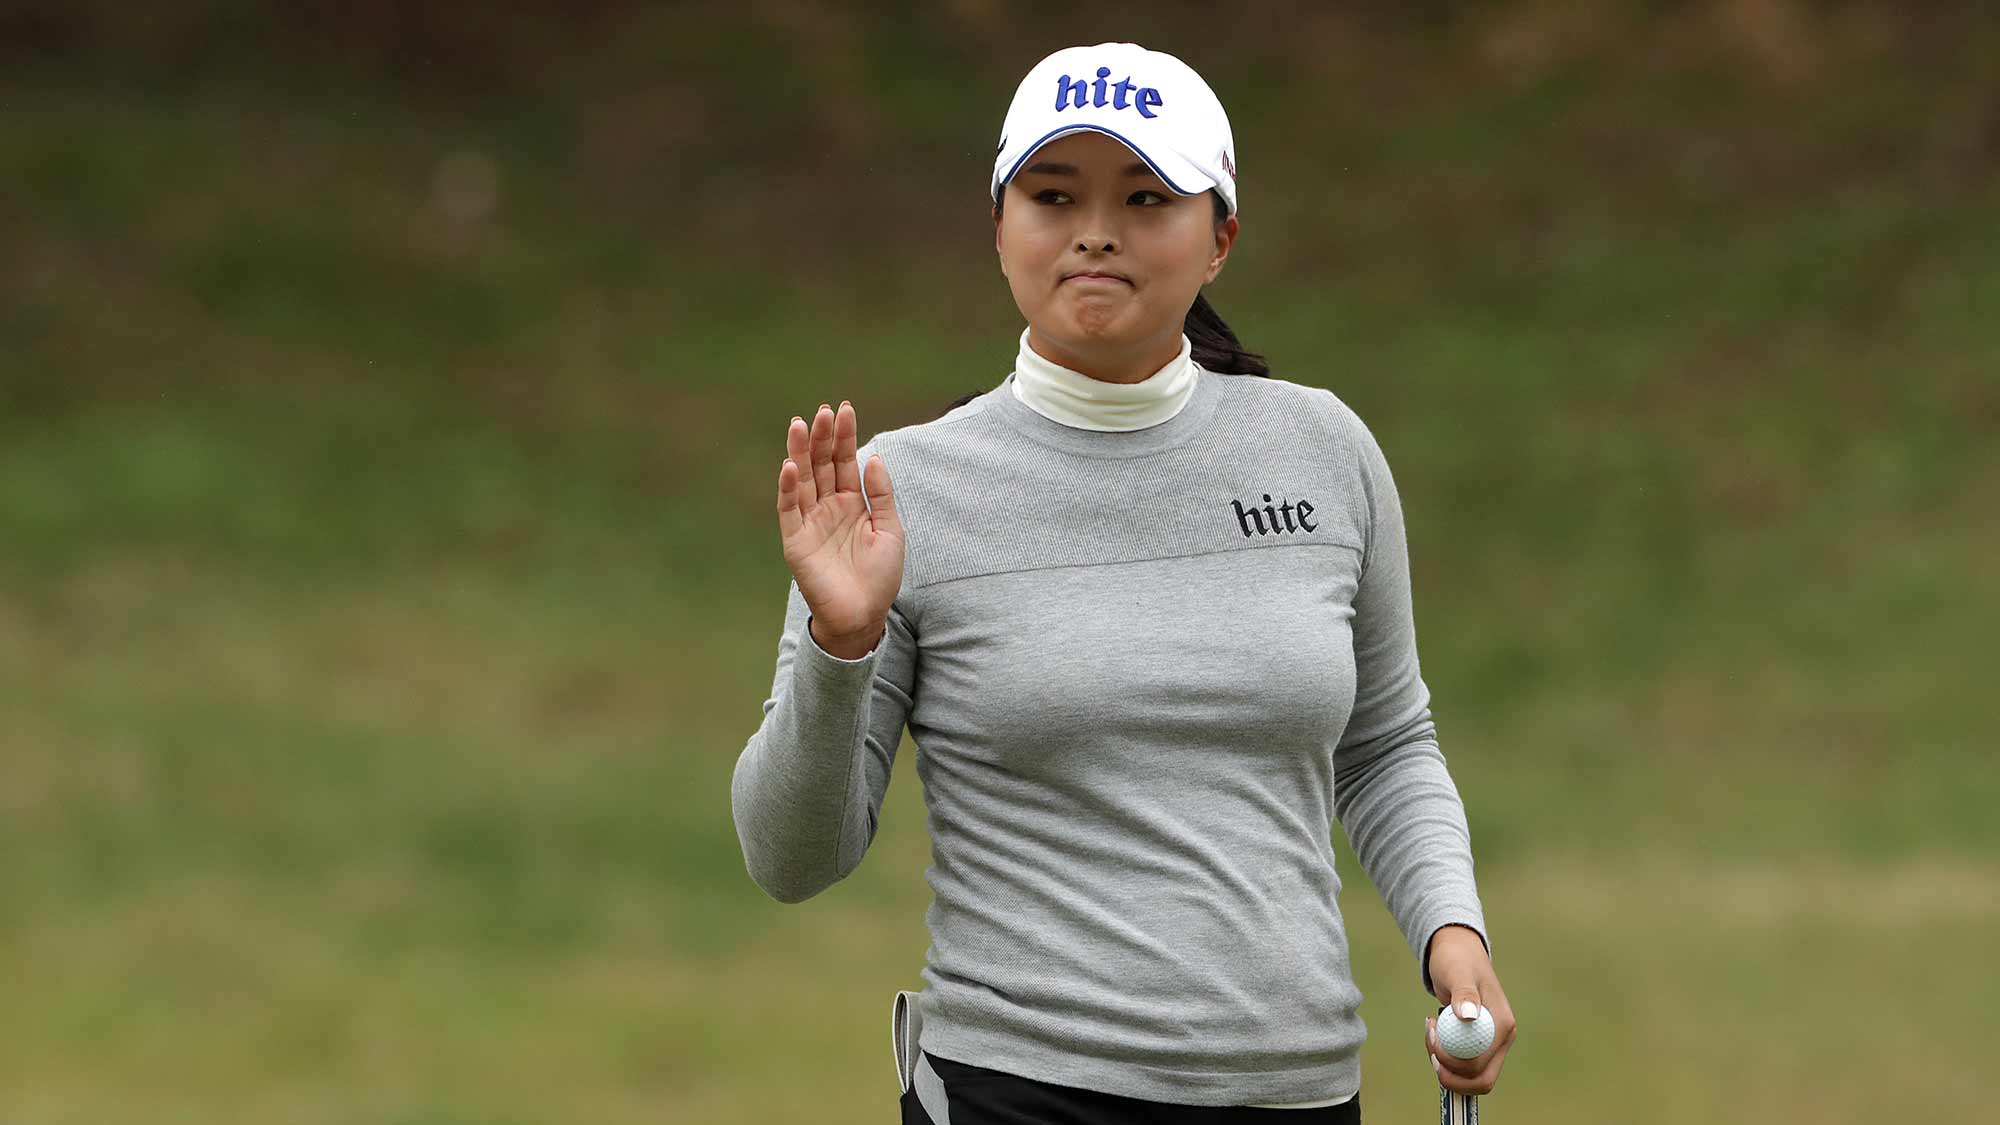 Jin Young Ko of South Korea acknowledges the gallery on the seven hole during Round 1 of 2019 BMW Ladies Championship at LPGA International Busan at on October 24, 2019 in Busan, Republic of Korea